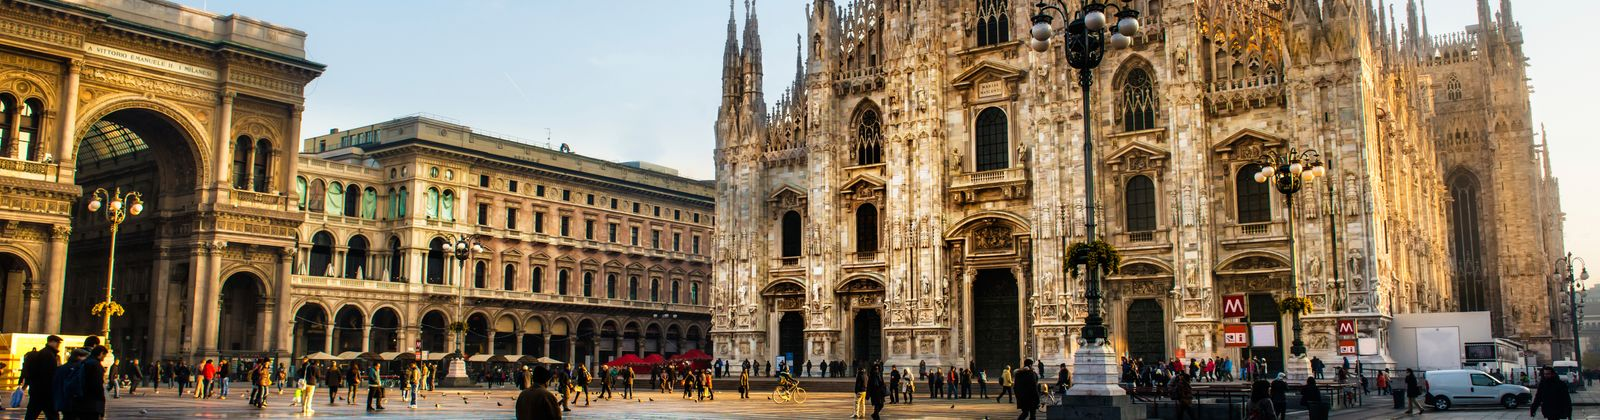 10 best things to do in milan a local 39 s guide for Places to go in milan